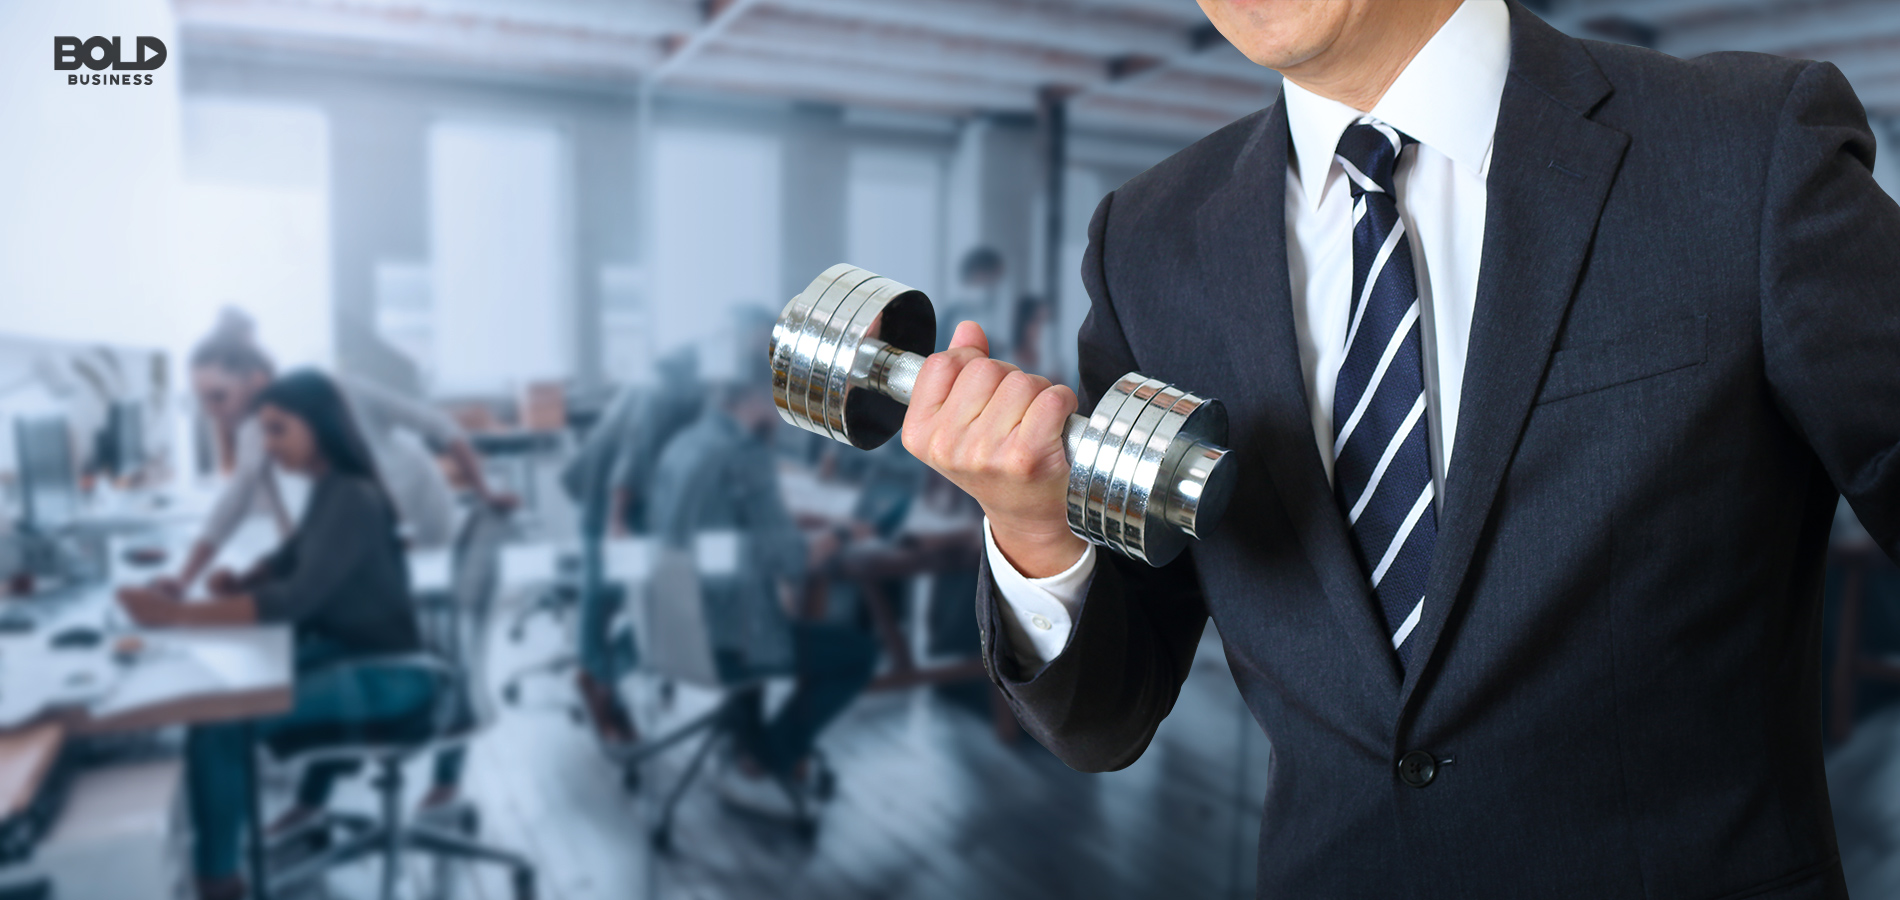 a photo of a suited man lifting a dumbbell amid his working colleagues in a StayWell Company office behind him